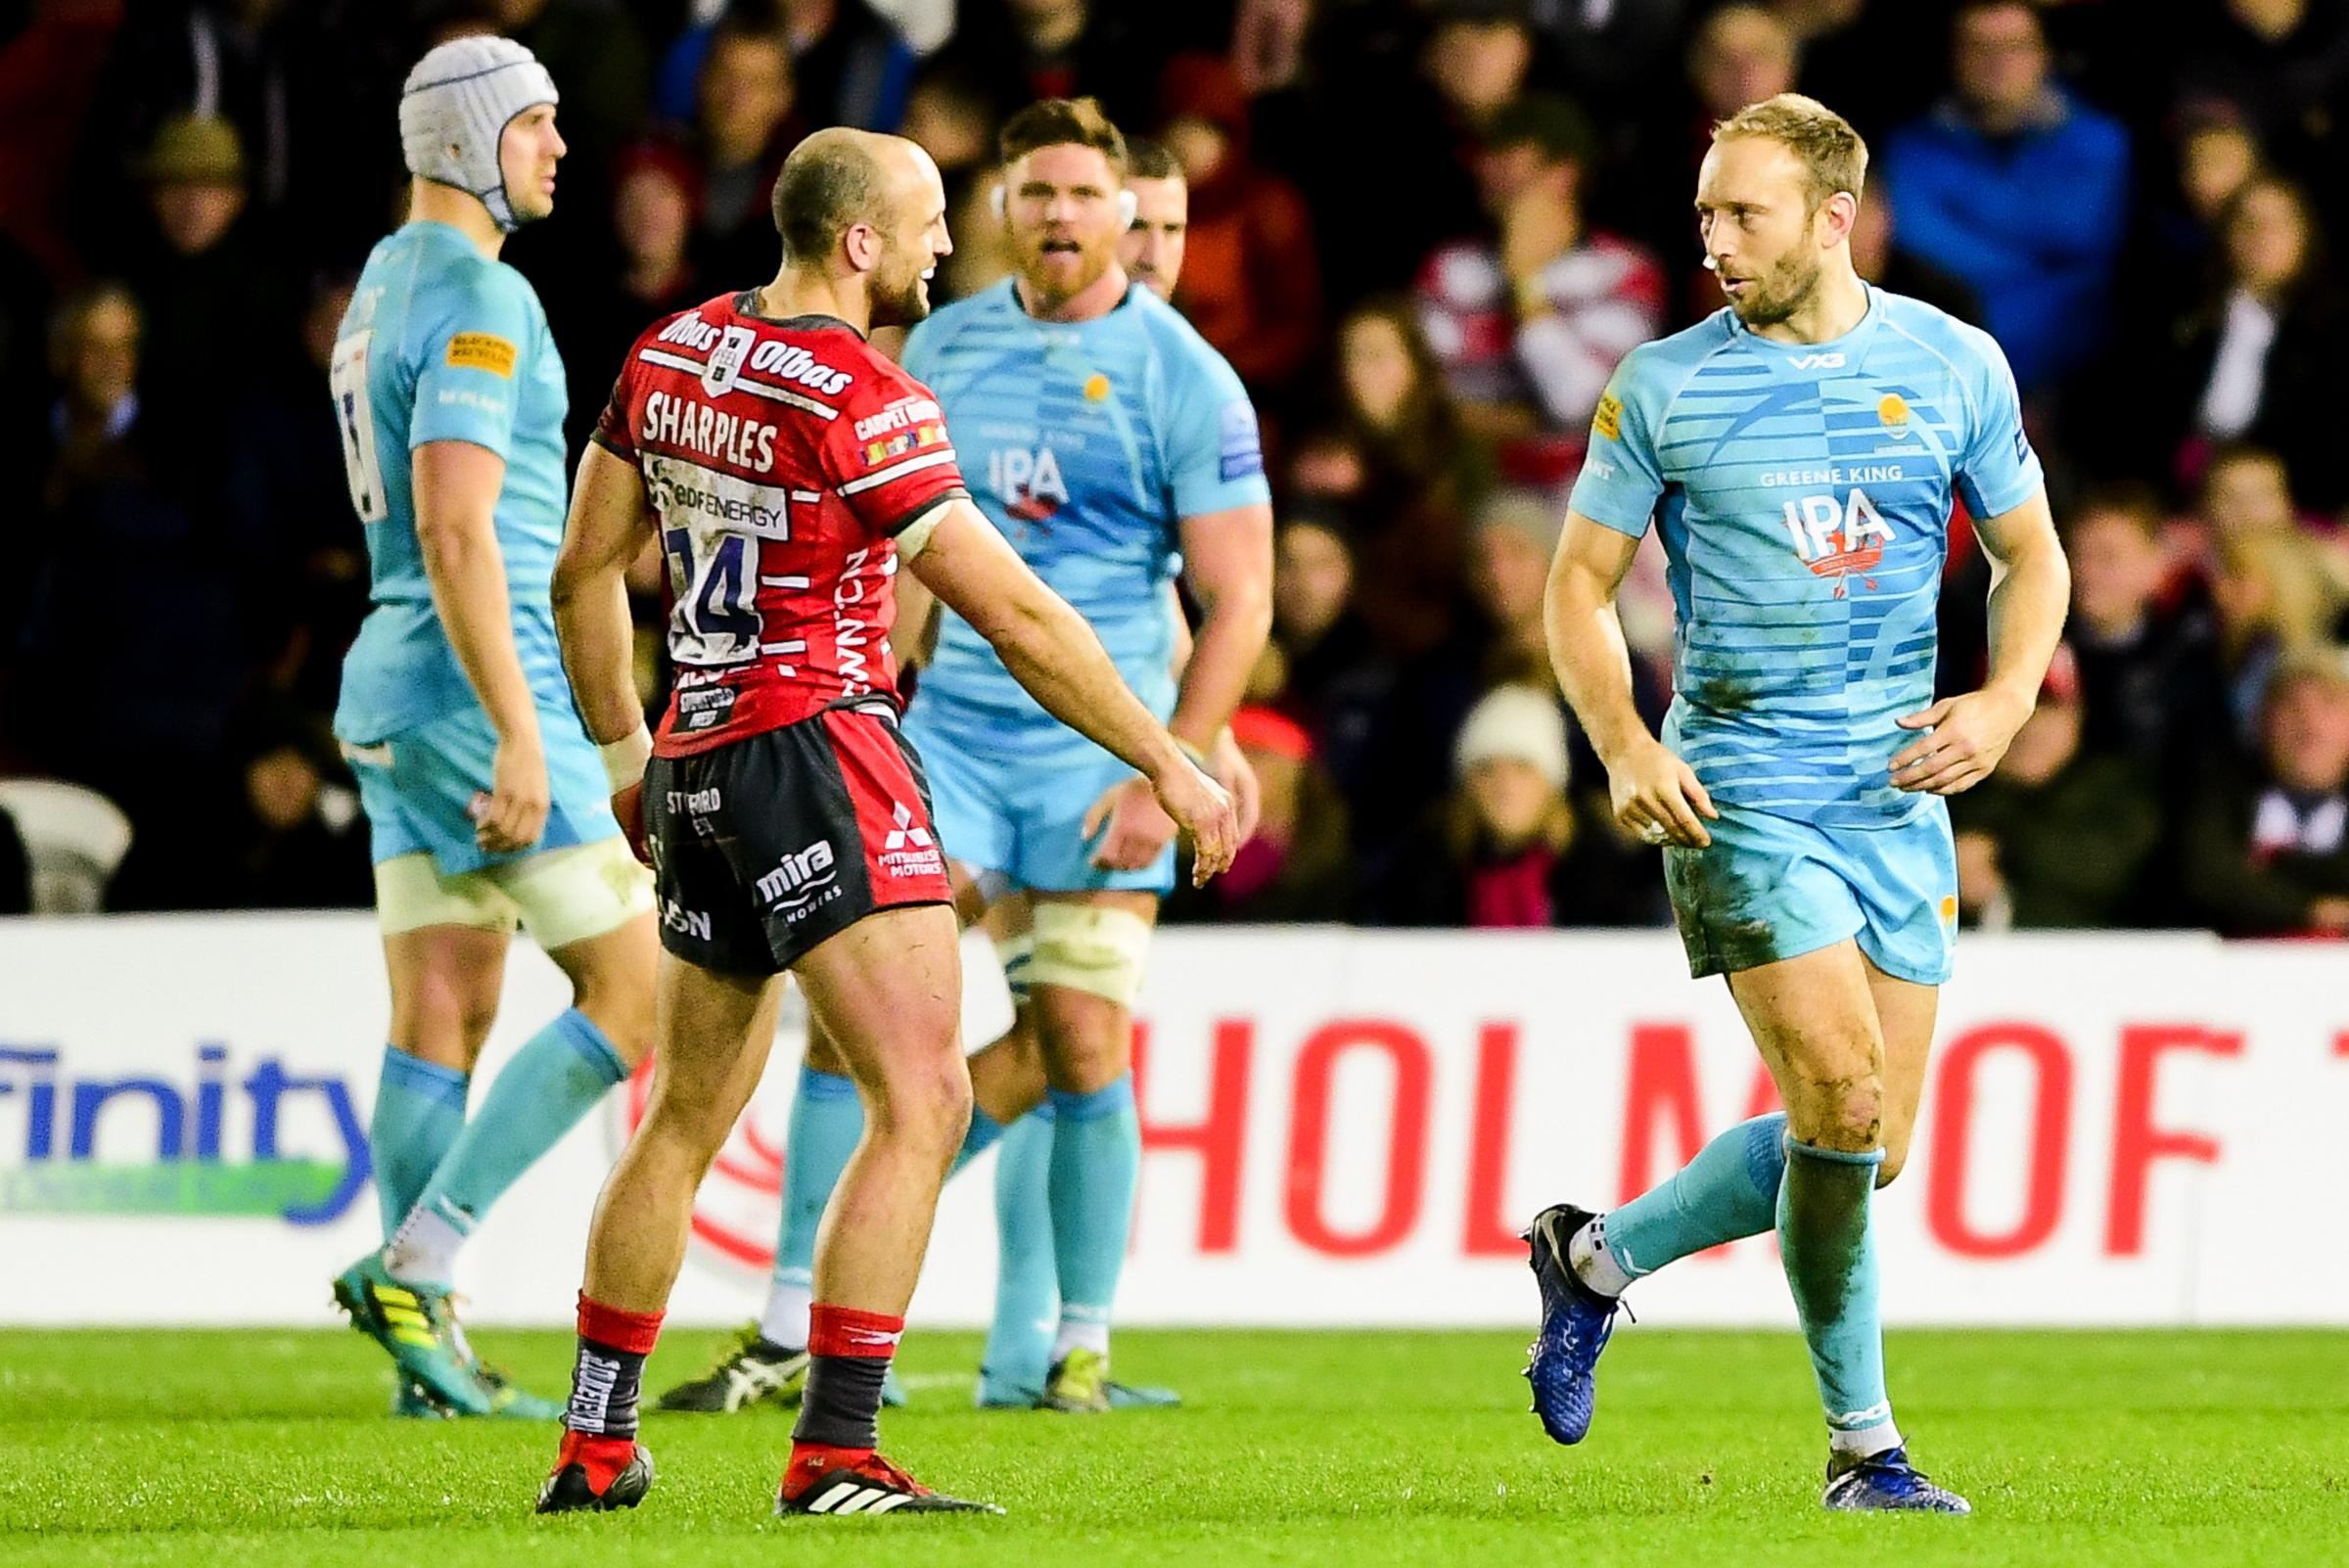 Chris Pennell and Charlie Sharples. Picture: Ryan Hiscott/JMP